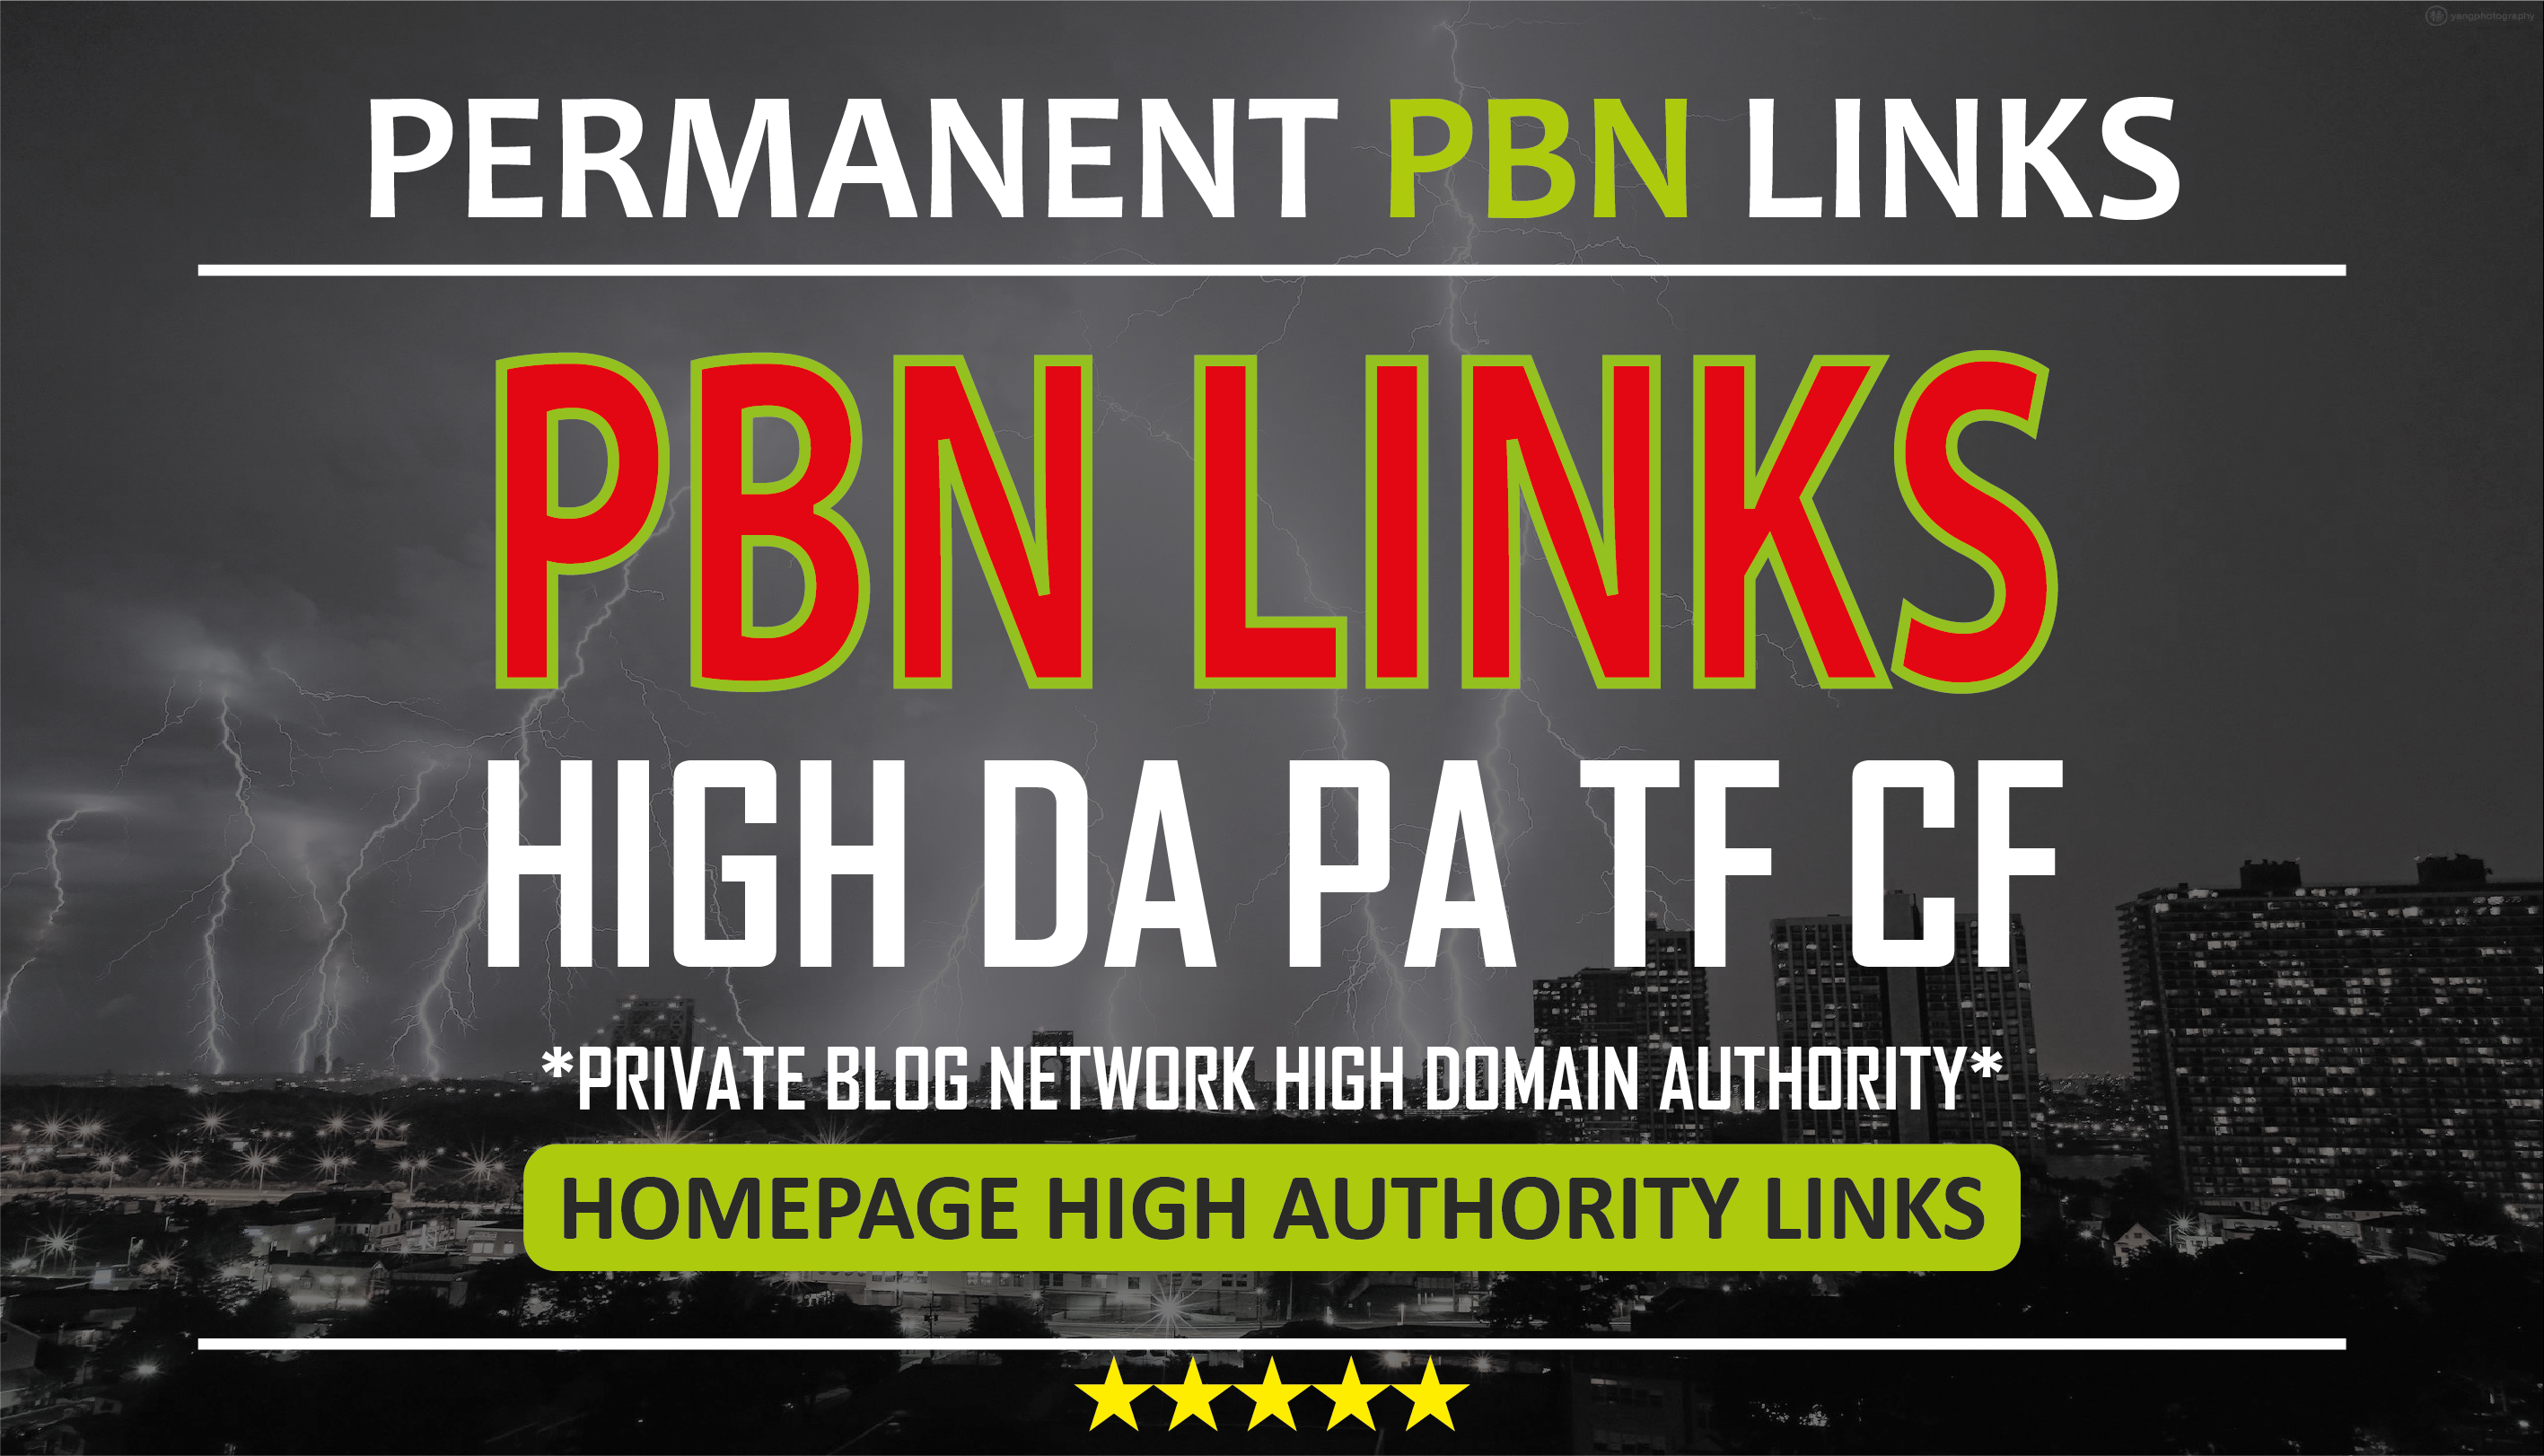 Create 12 High DA PA TF CF HomePage Dofollow PBN Backlinks